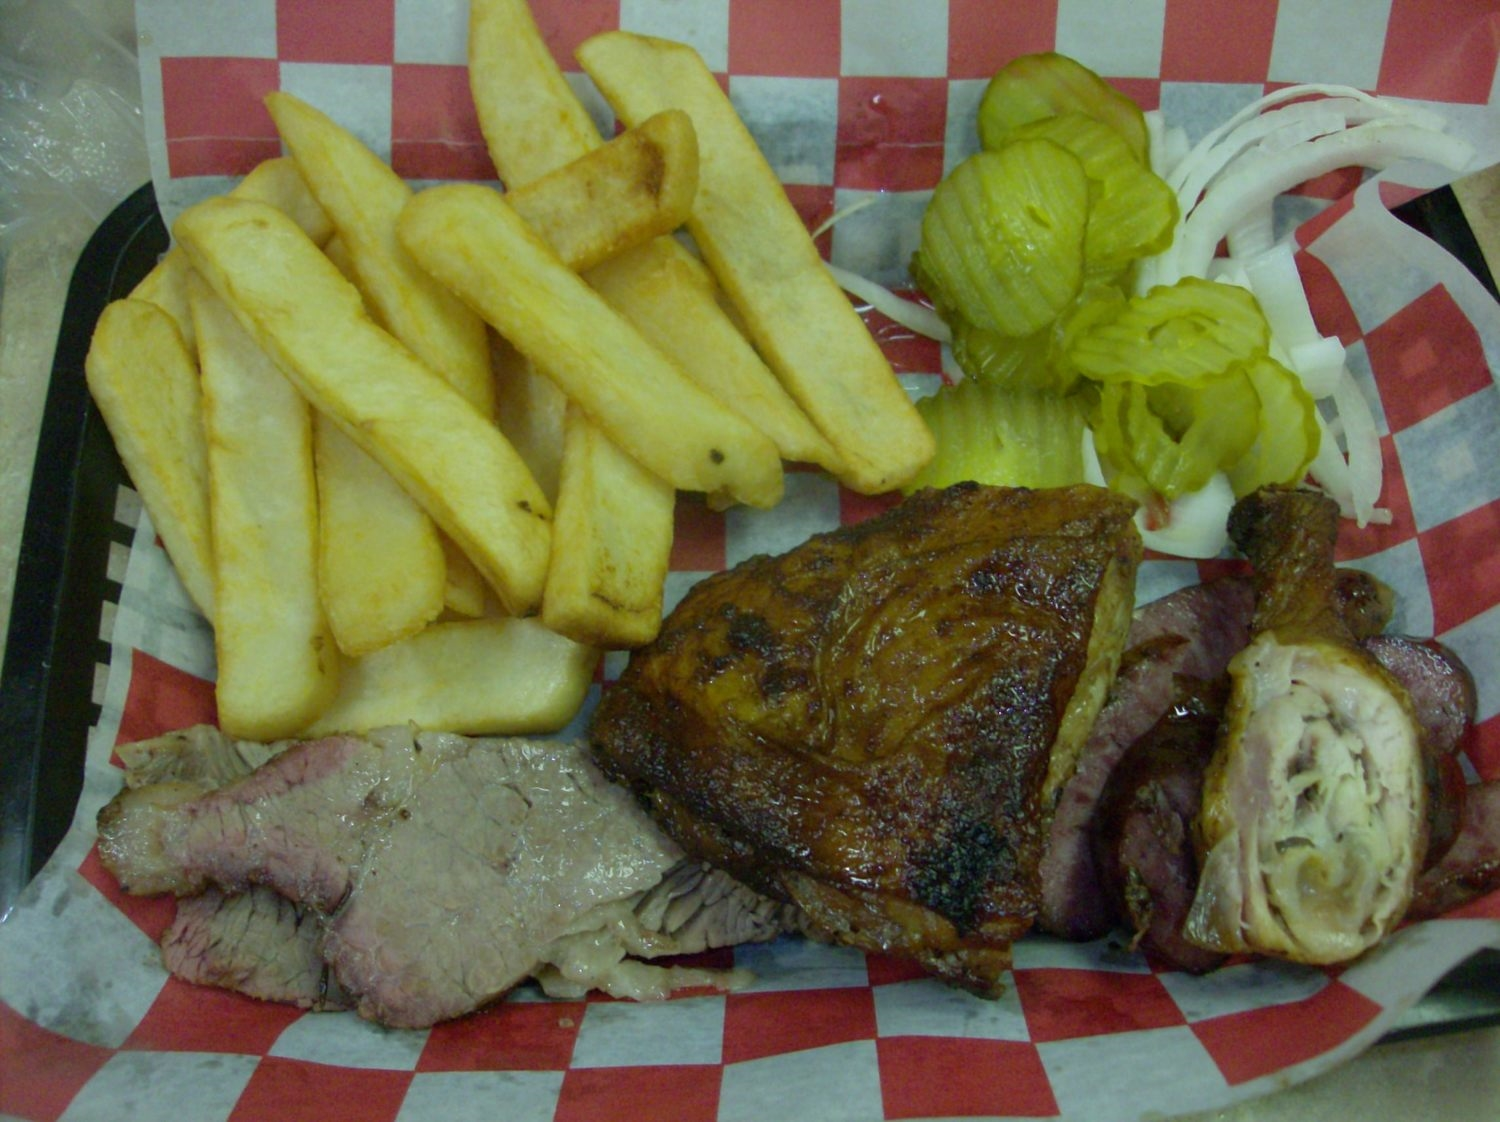 Bar-B-Que Plate (three meat: Brisket, Chicken and sausage) with Fries